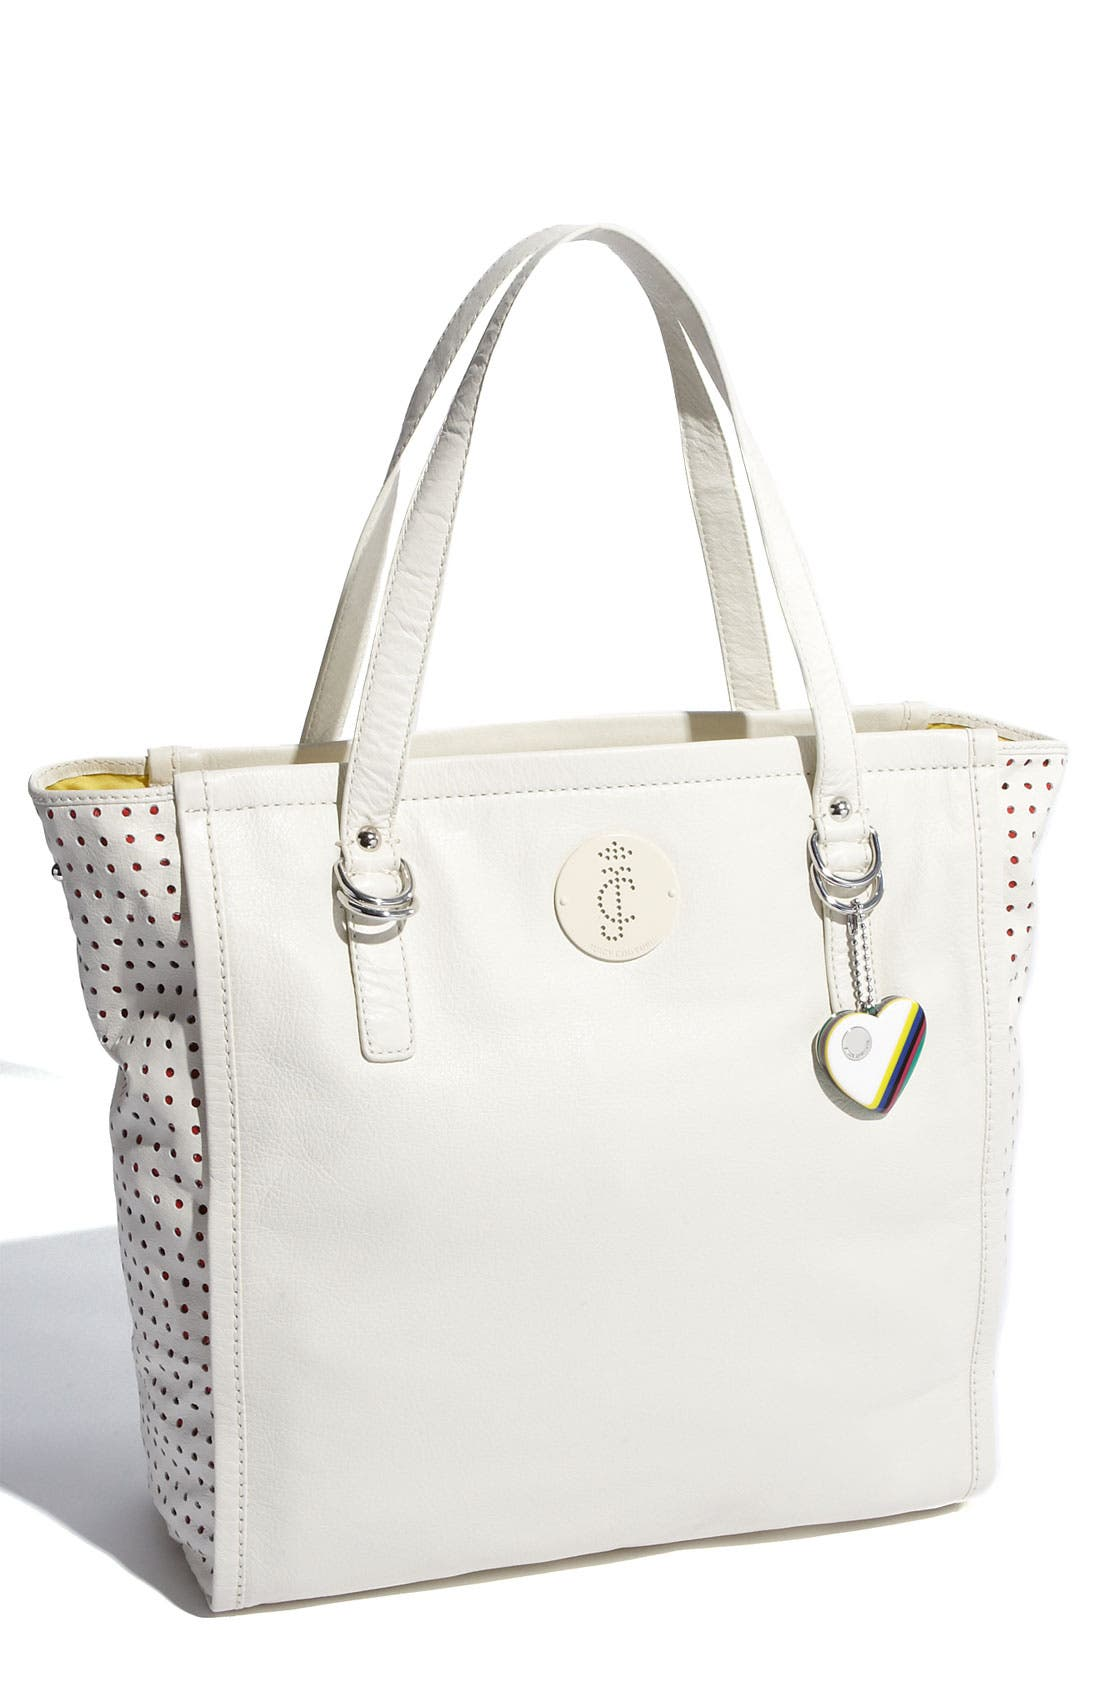 Main Image - Juicy Couture 'Paisley Punched Up' Leather Tote